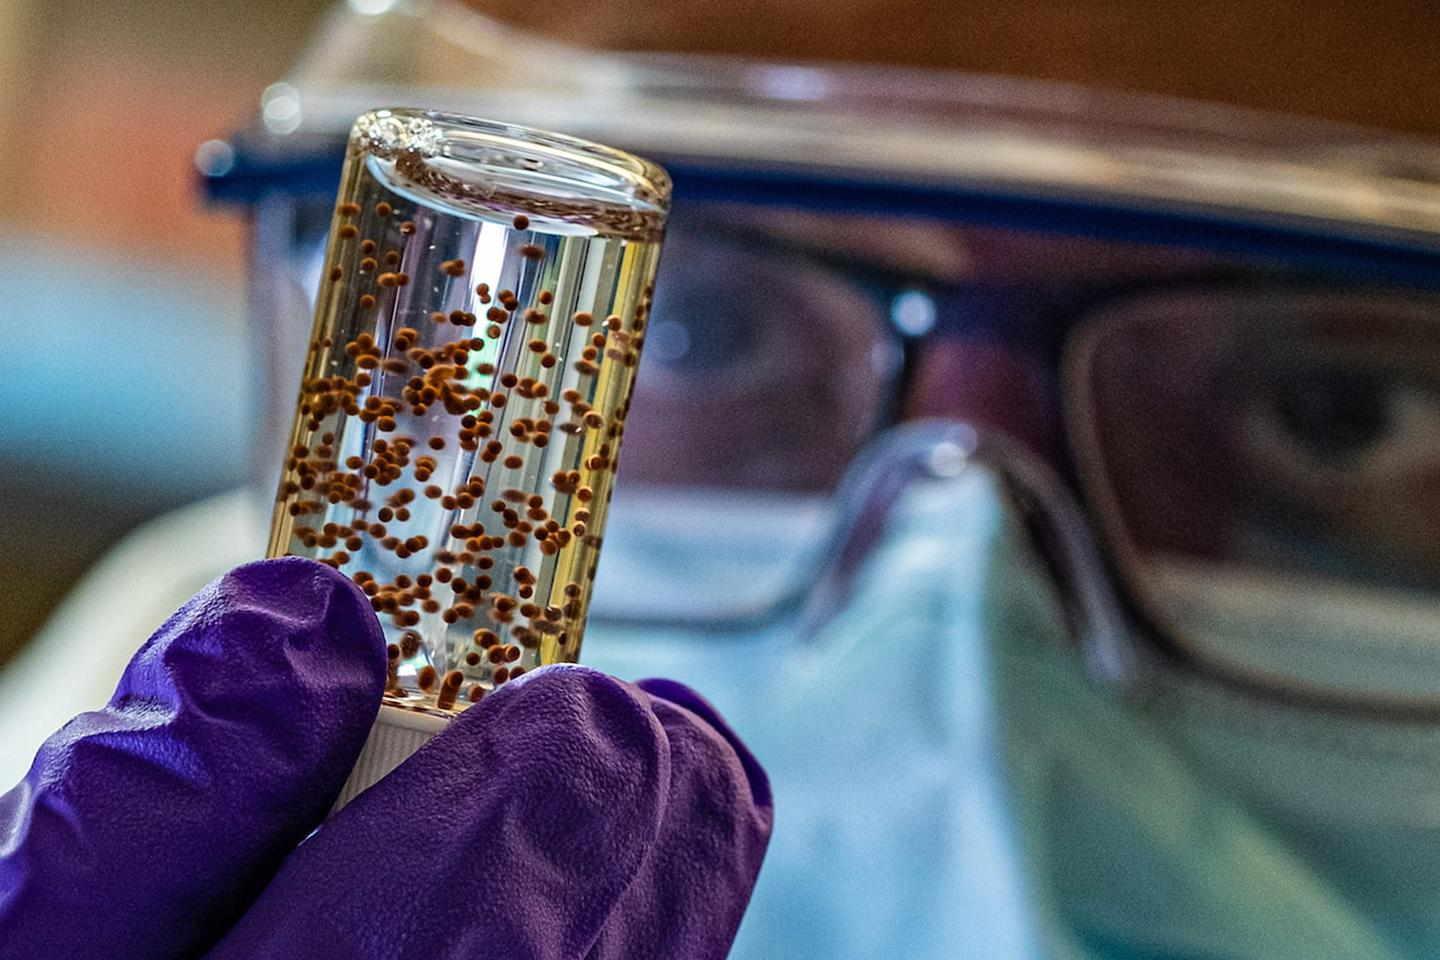 A vial of the stem cell capsules, which were implanted near the hearts of mice that had suffered heart attacks, and worked to heal the damaged tissue